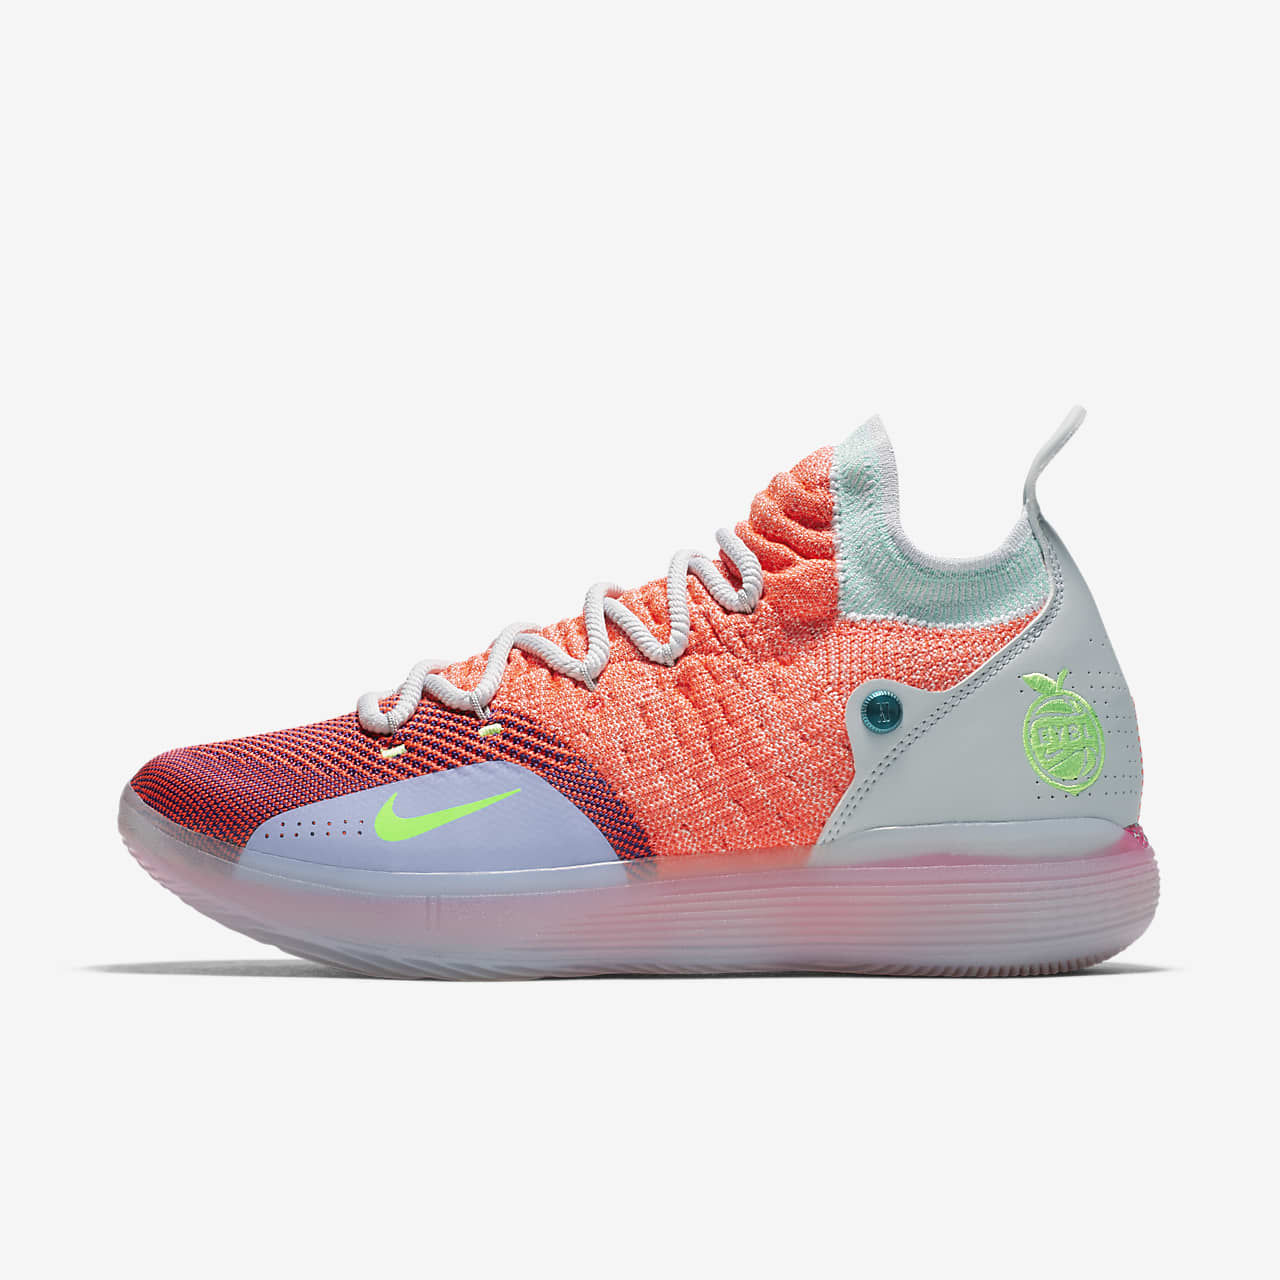 Nike Zoom KD11 EP Basketball Shoe